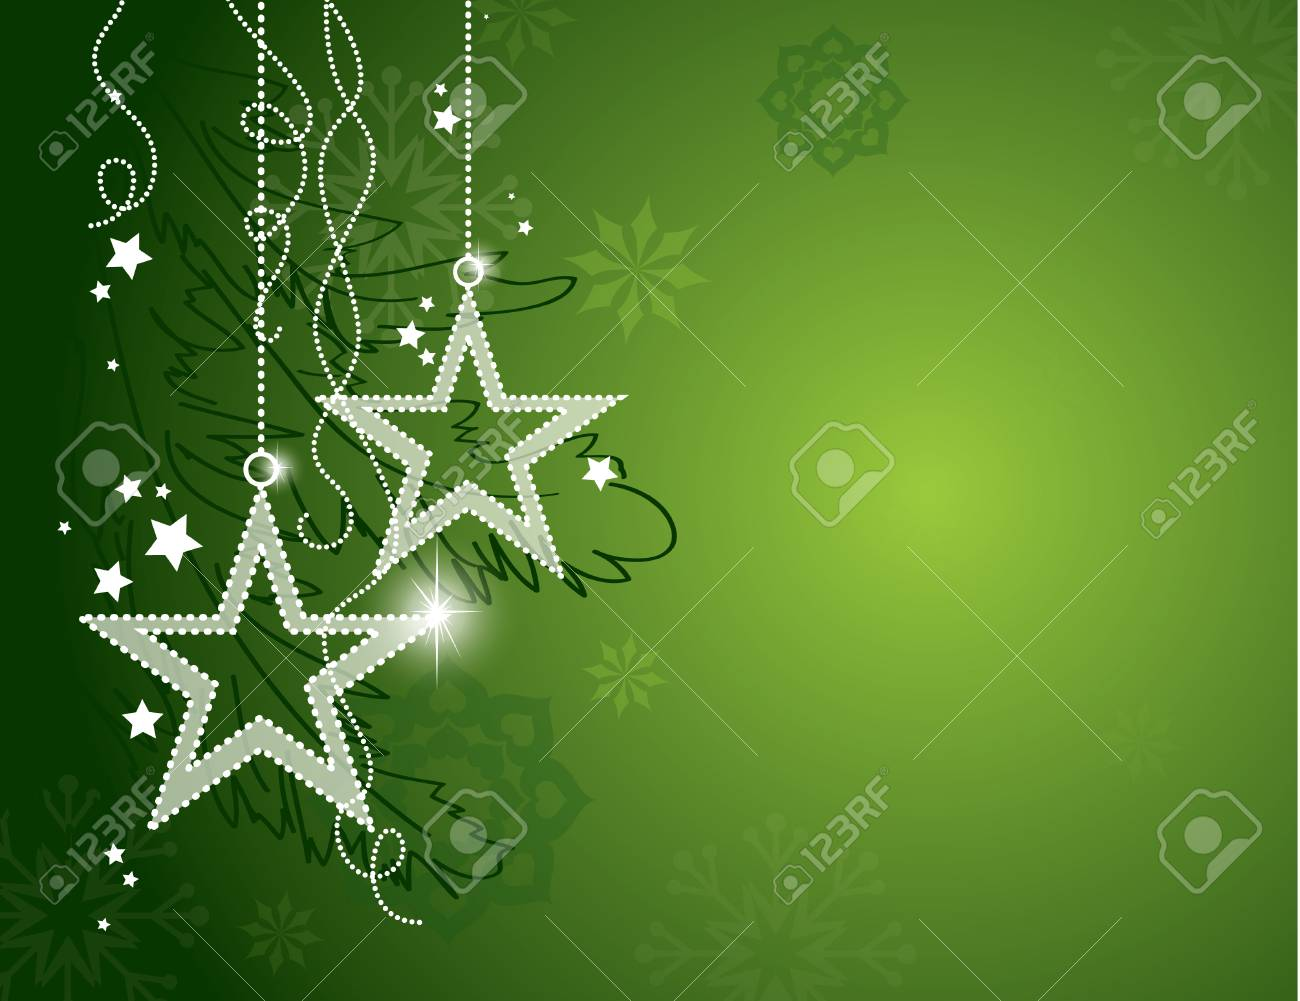 Christmas Background Stock Vector - 23533739